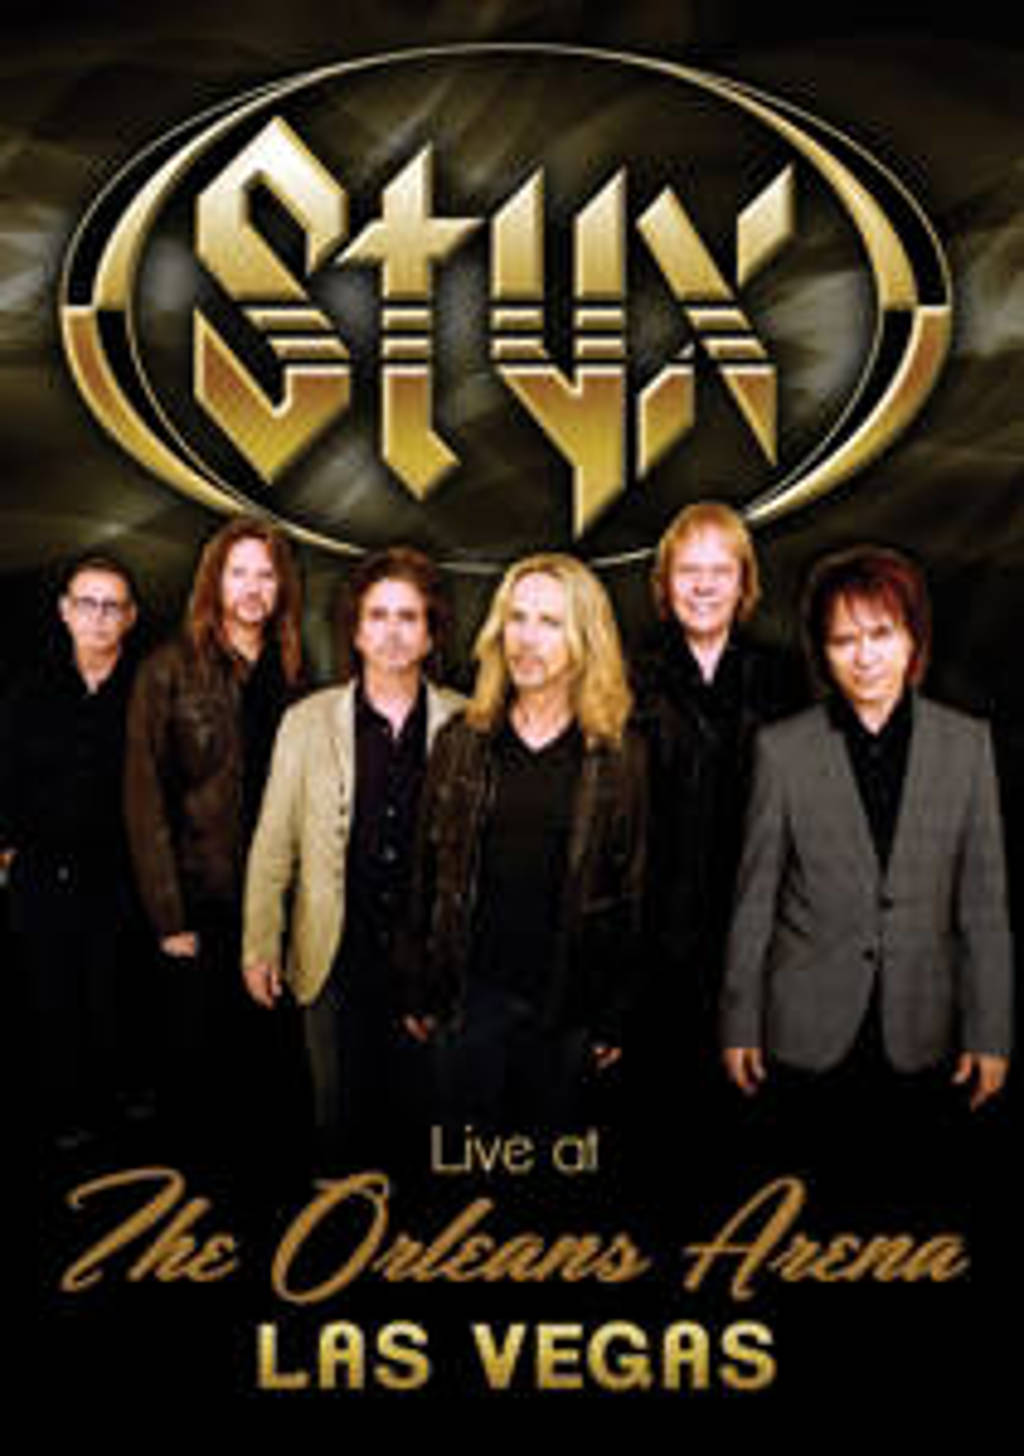 Styx - Live At The Orleans Arena Las Vegas (DVD)